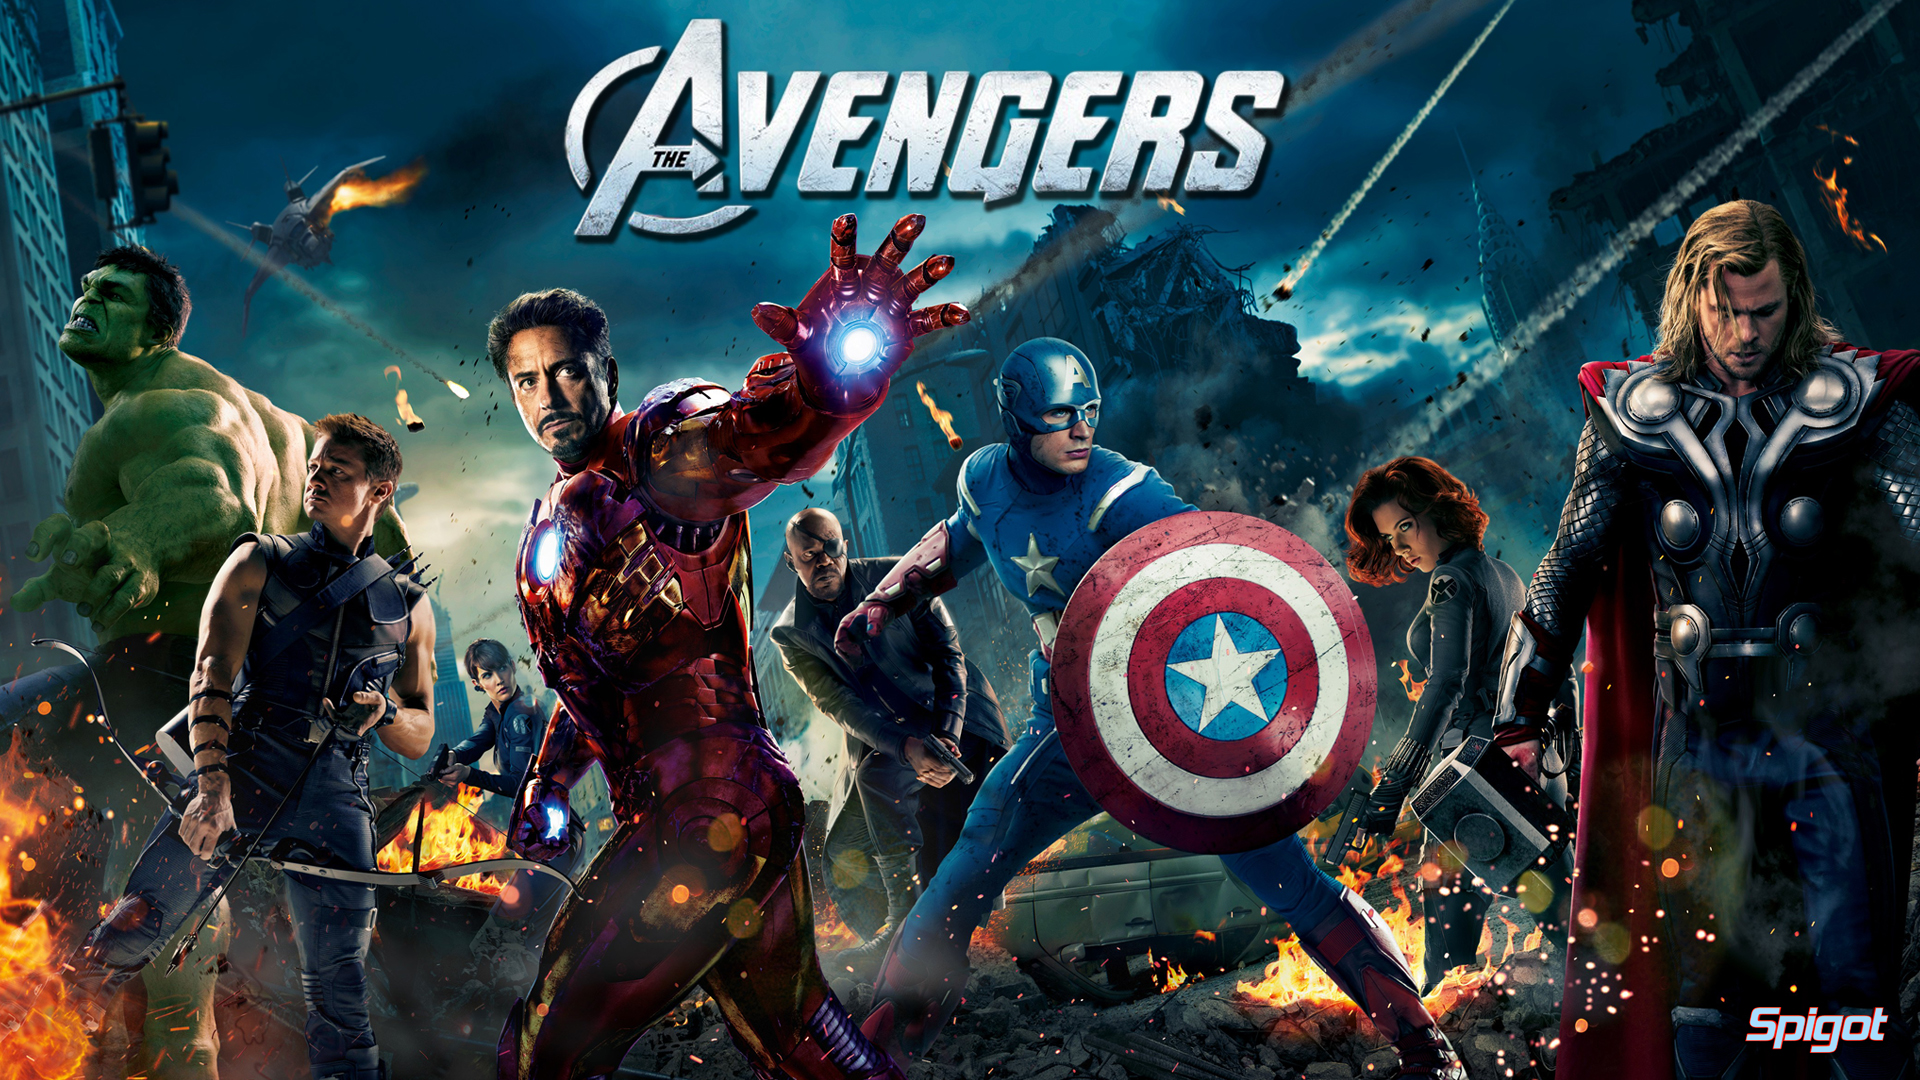 http://georgespigot.files.wordpress.com/2012/10/the-avengers-15.jpg